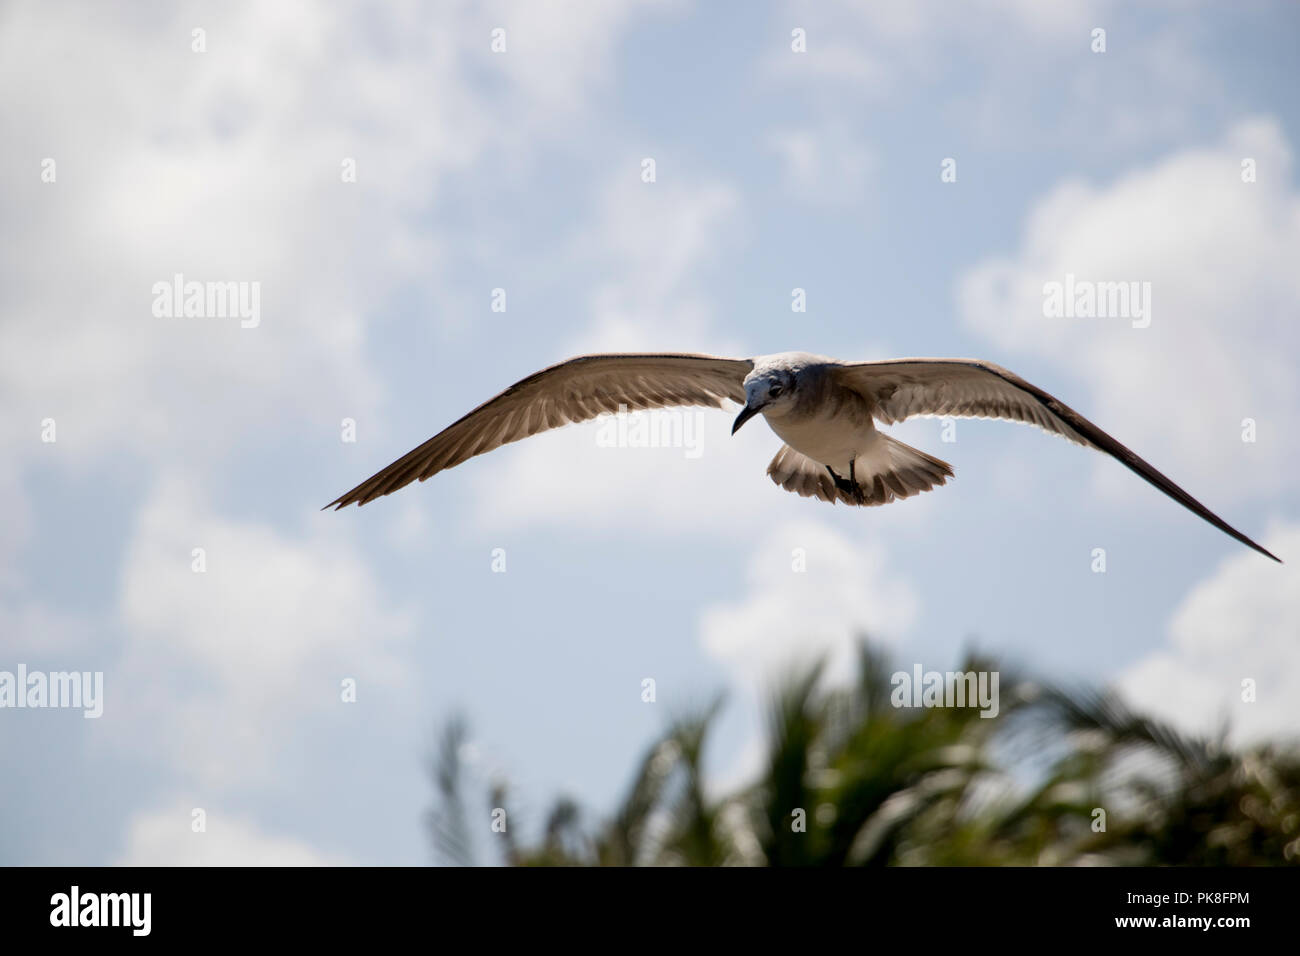 Bird flying in the air with clouds and tree tops in the background. Seagull flying in the sky. - Stock Image